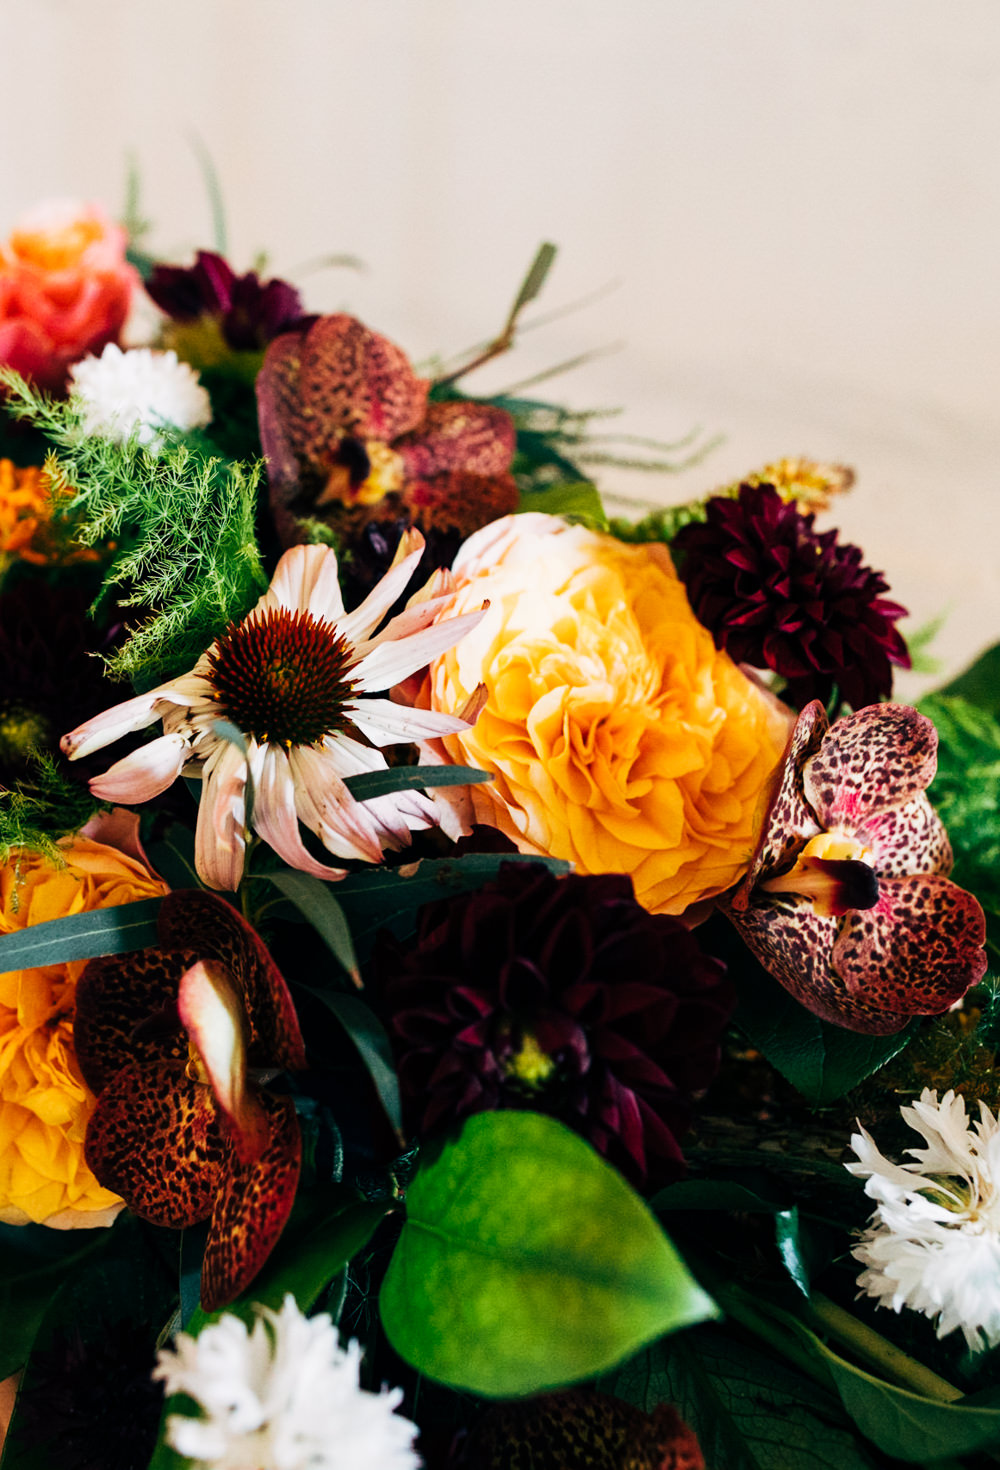 Table Flowers Autumn Dahlias Orchids Echinacea Rose Red Hot Pokers Butterflyweed Amaranthus Menthe Grevillea Asparagus Ferns Retro Wedding Ideas Emily Little Wedding Photography